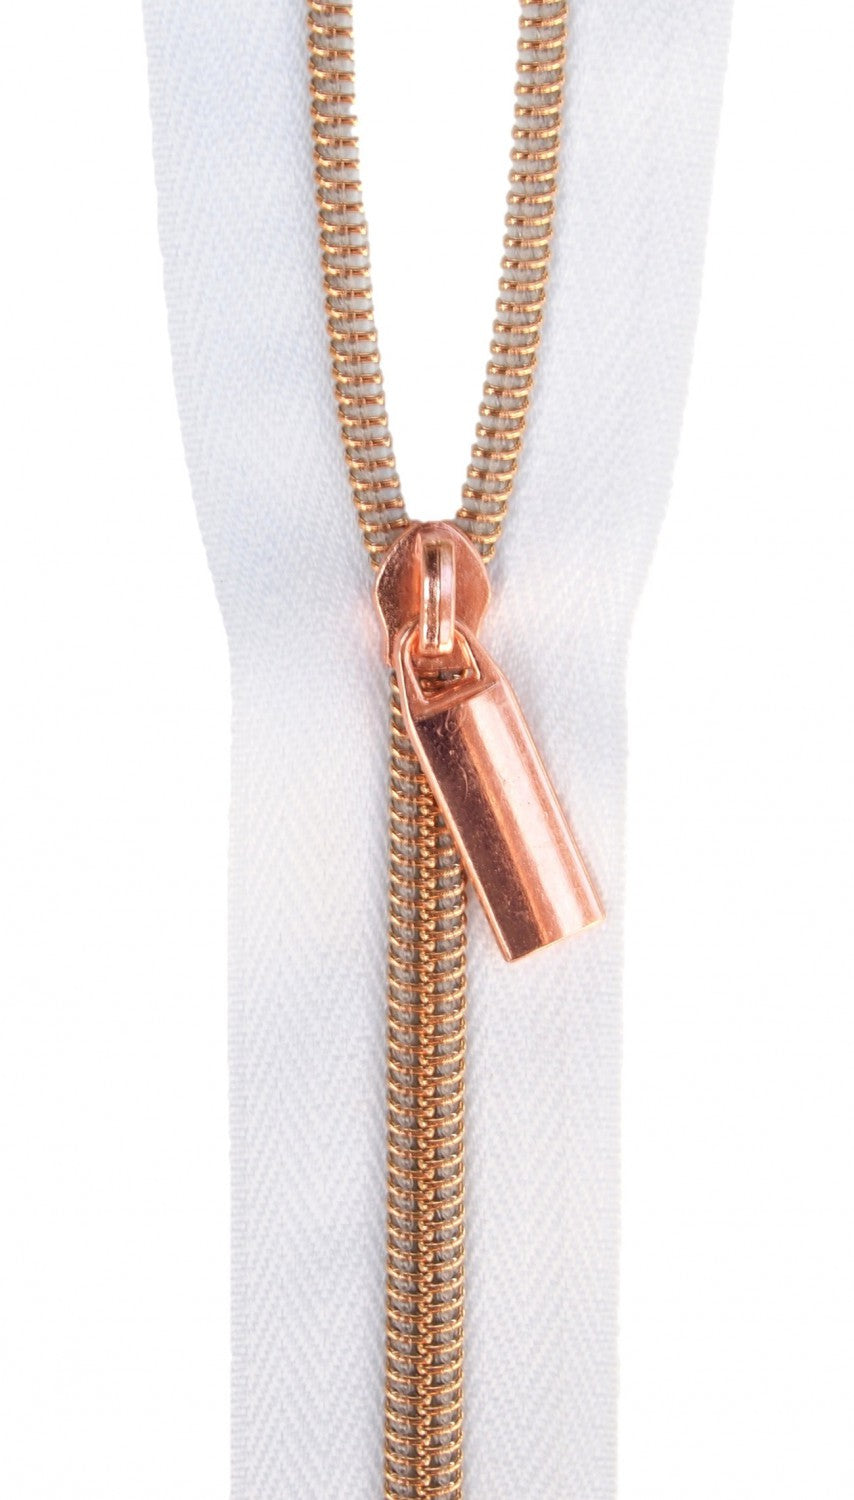 Zippers by the Yard - White Tape with Rose Gold Teeth